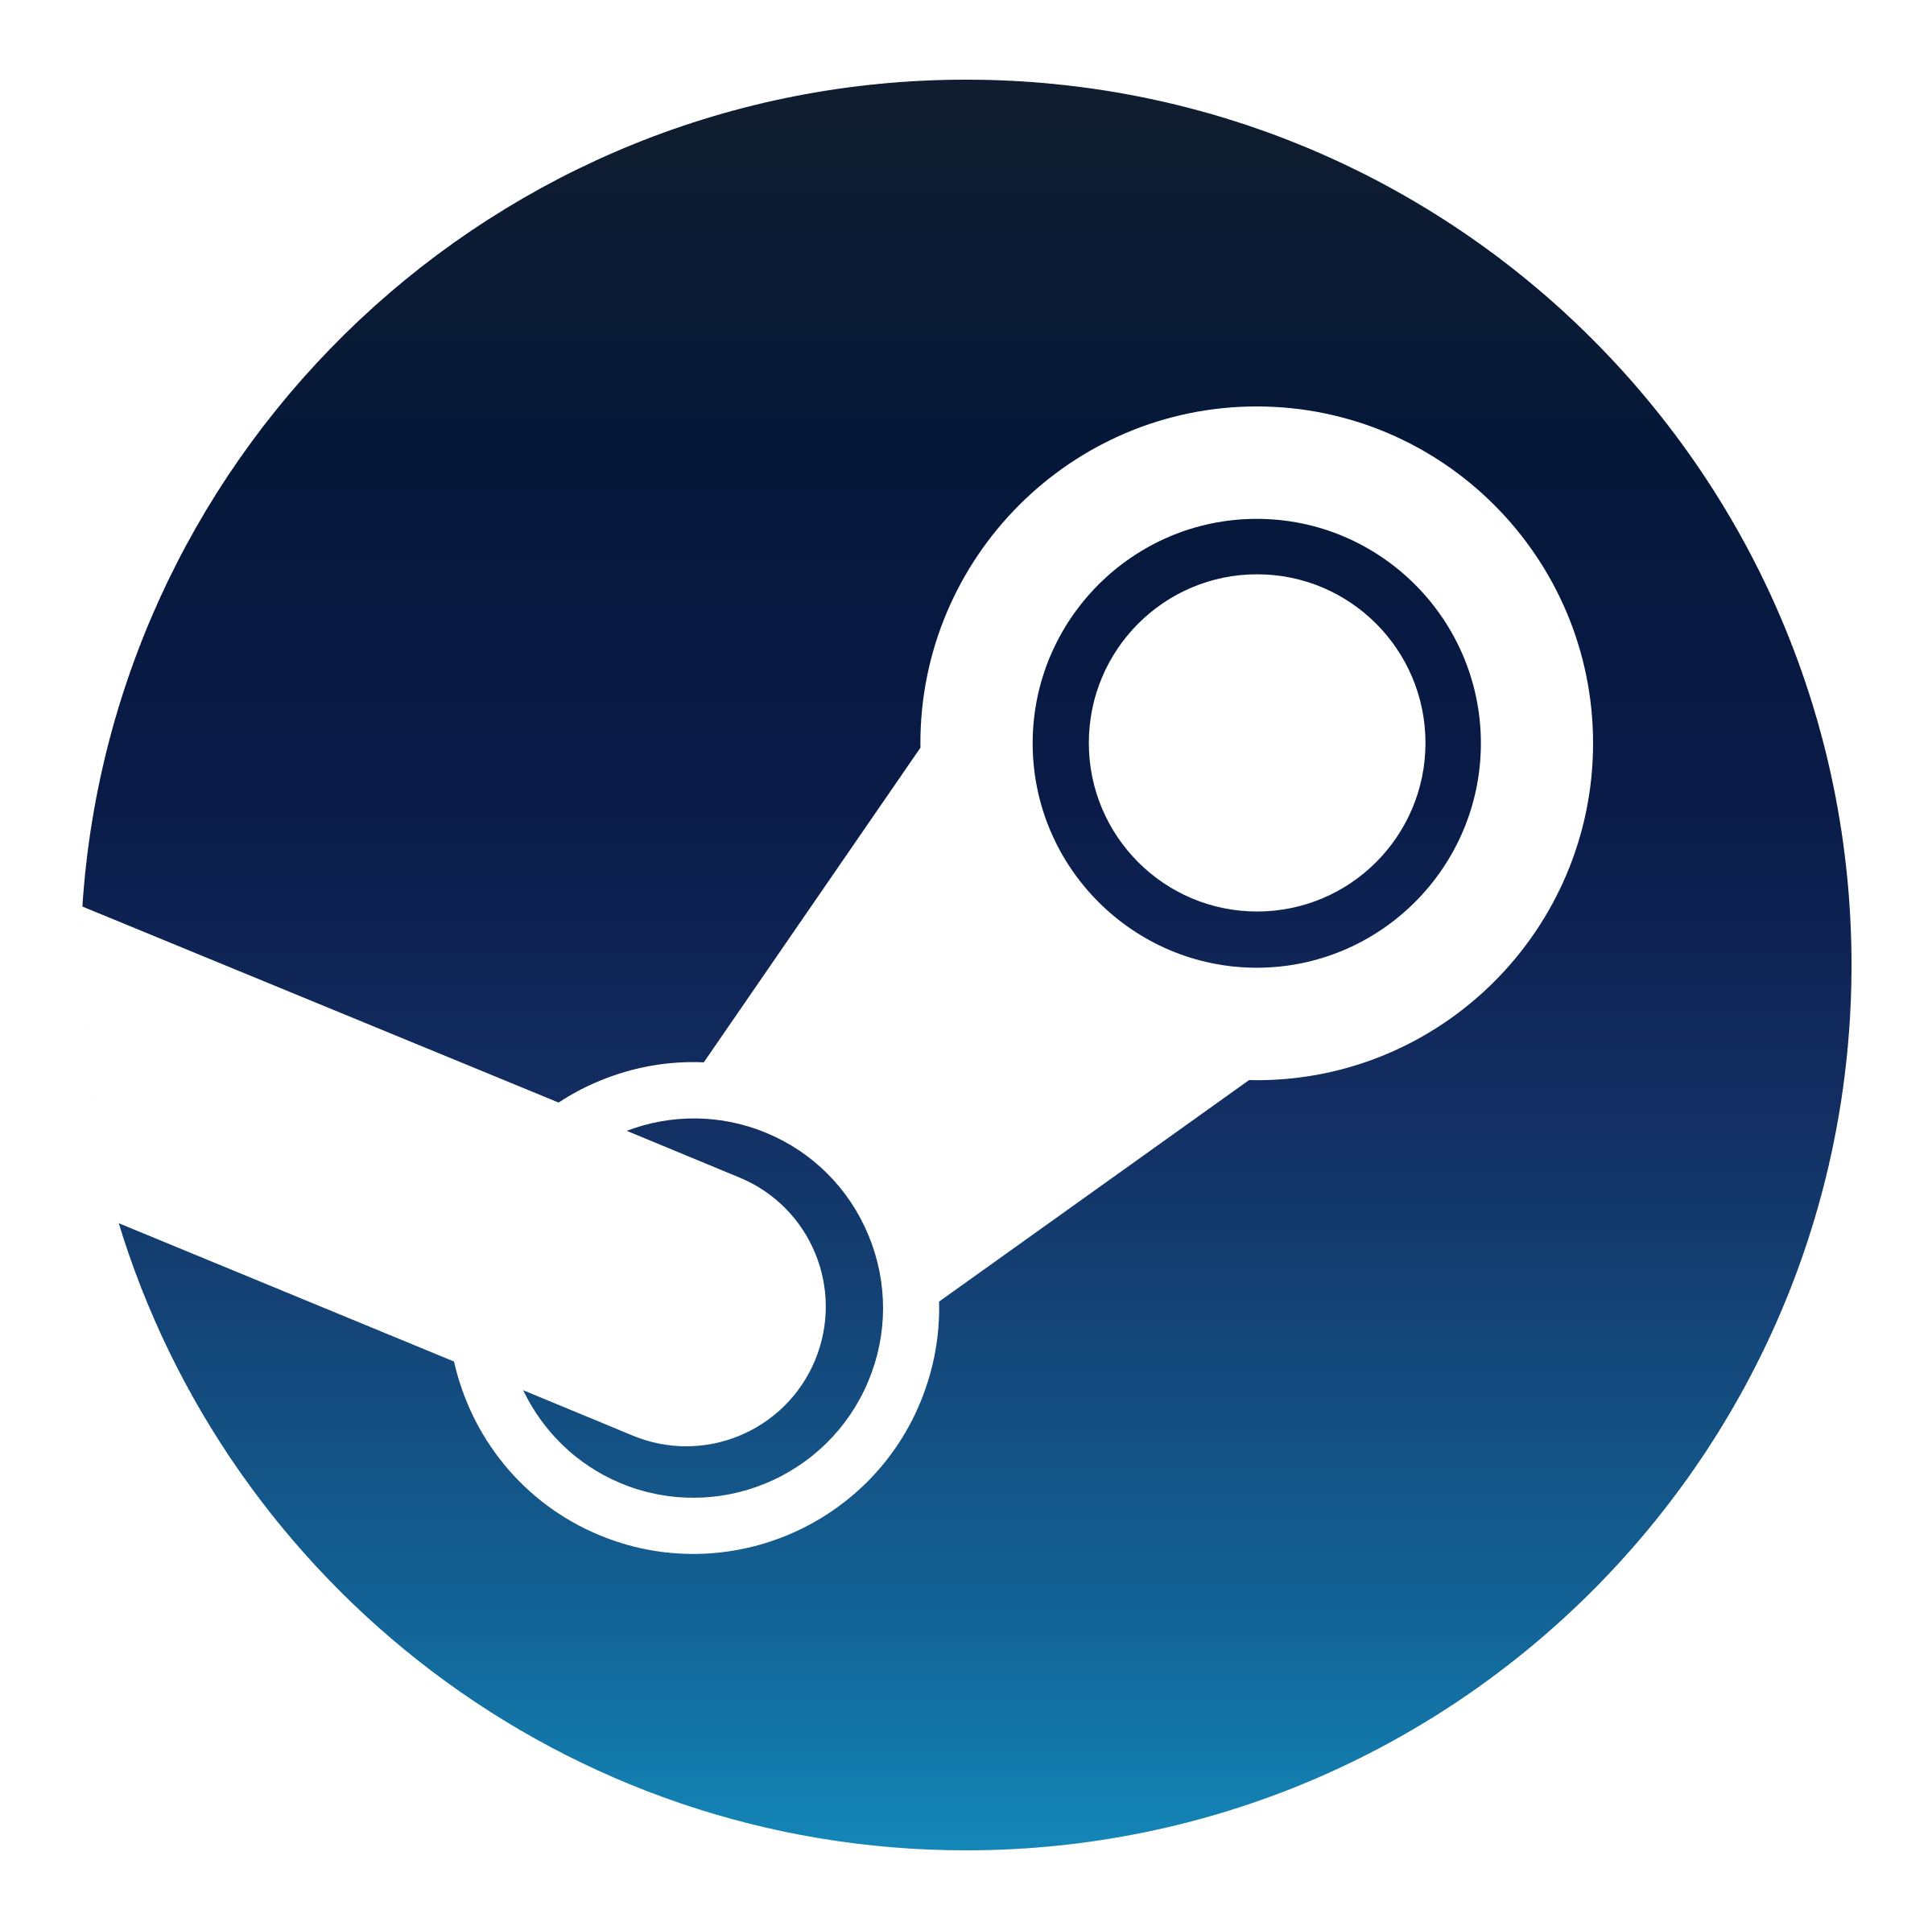 Steam Logo (C) Valve Corporation